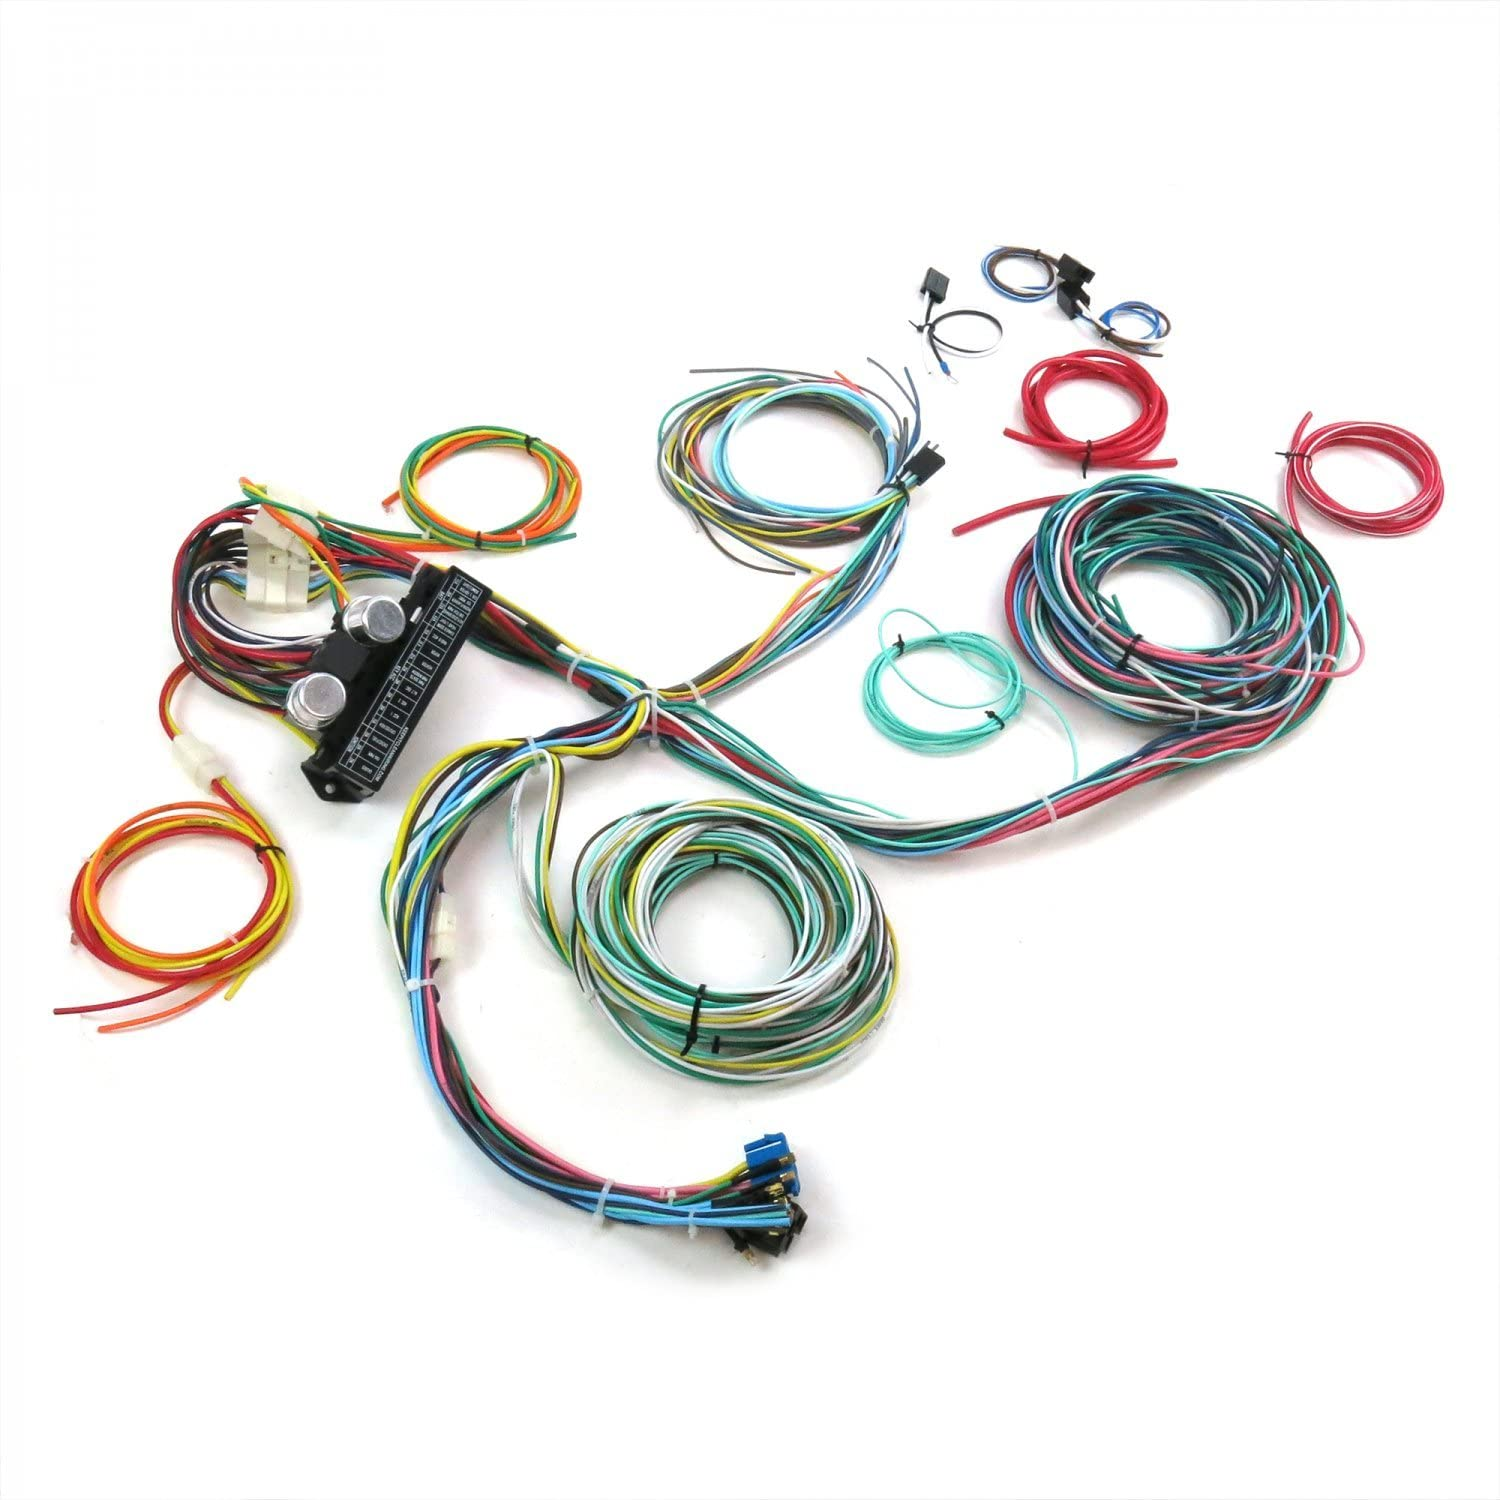 Amazon.com: Keep It Clean 689406 Wiring Harness (Ultimate 15 Fuse 12V  Conversion 40 1940 Ford Coupe-Club,Standard,Deluxe): AutomotiveAmazon.com